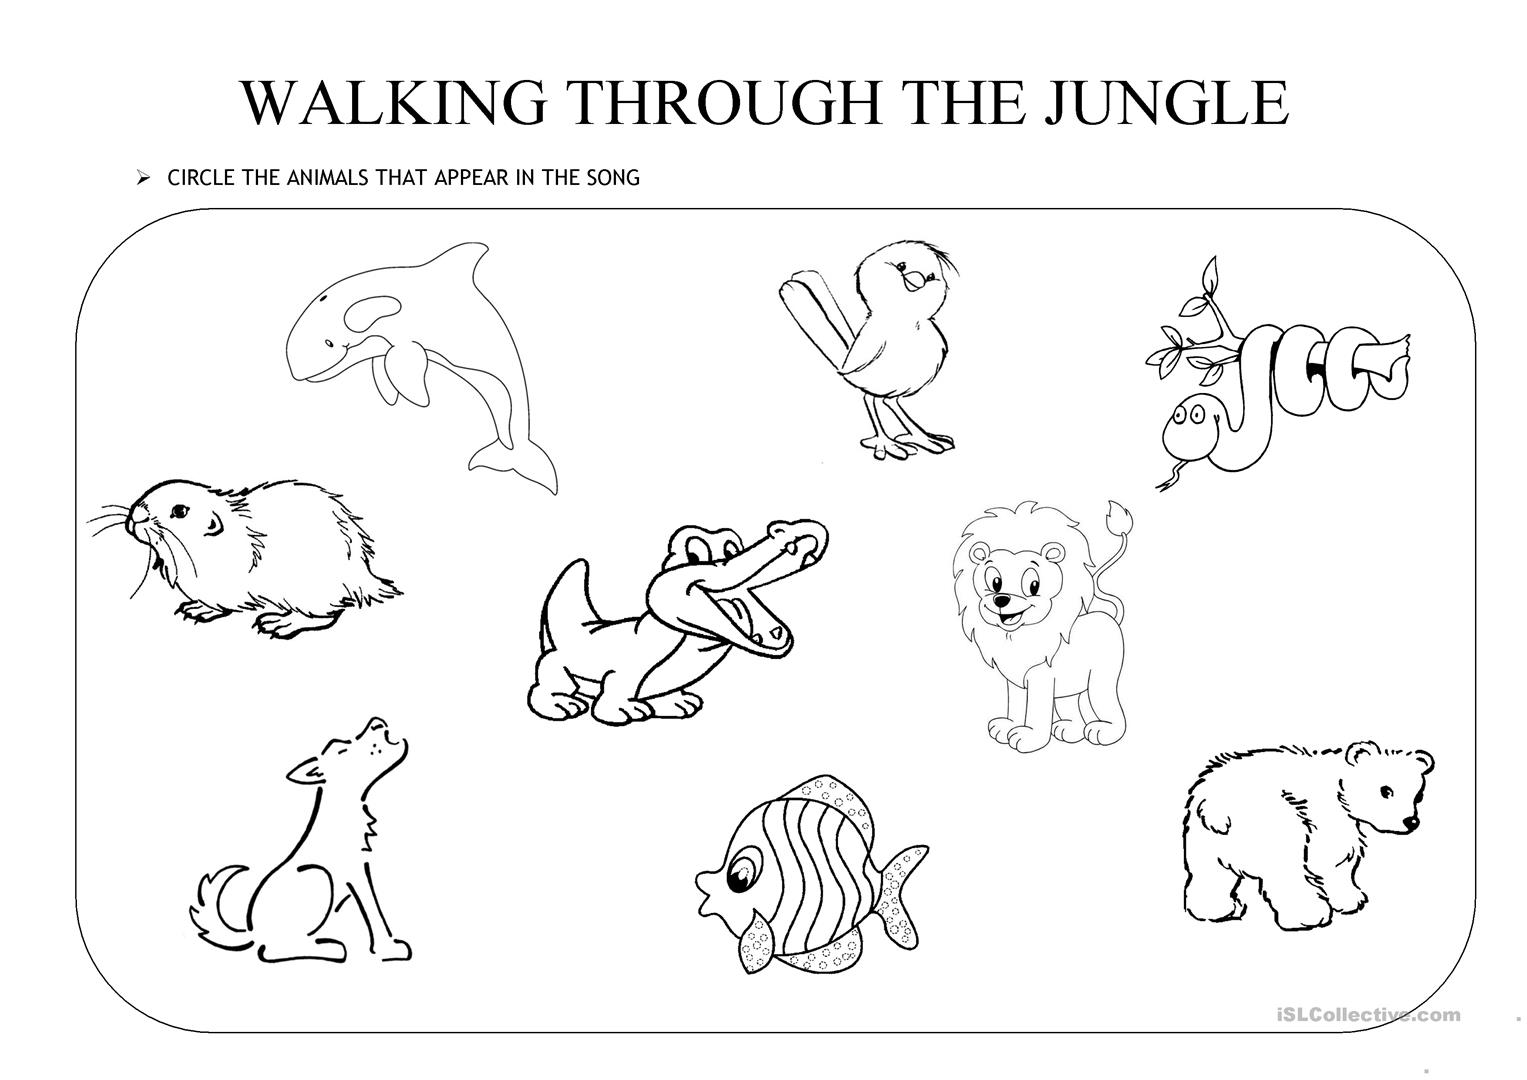 Jungle Animals Worksheet : Walking through the jungle worksheet free esl printable